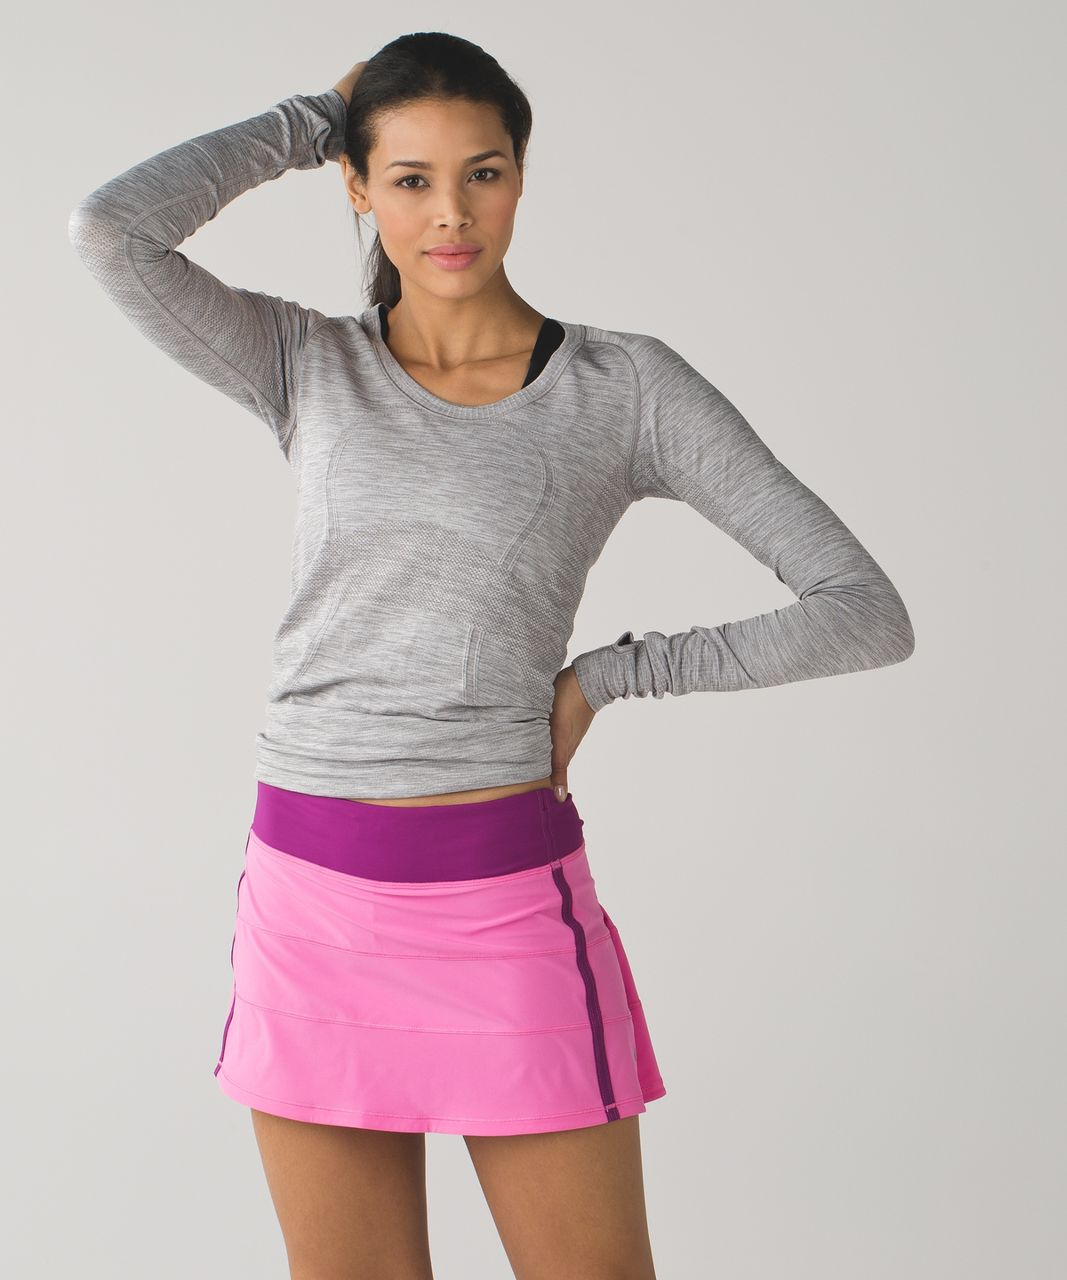 Lululemon Pace Rival Skirt II (Regular) - Pink Paradise / Regal Plum